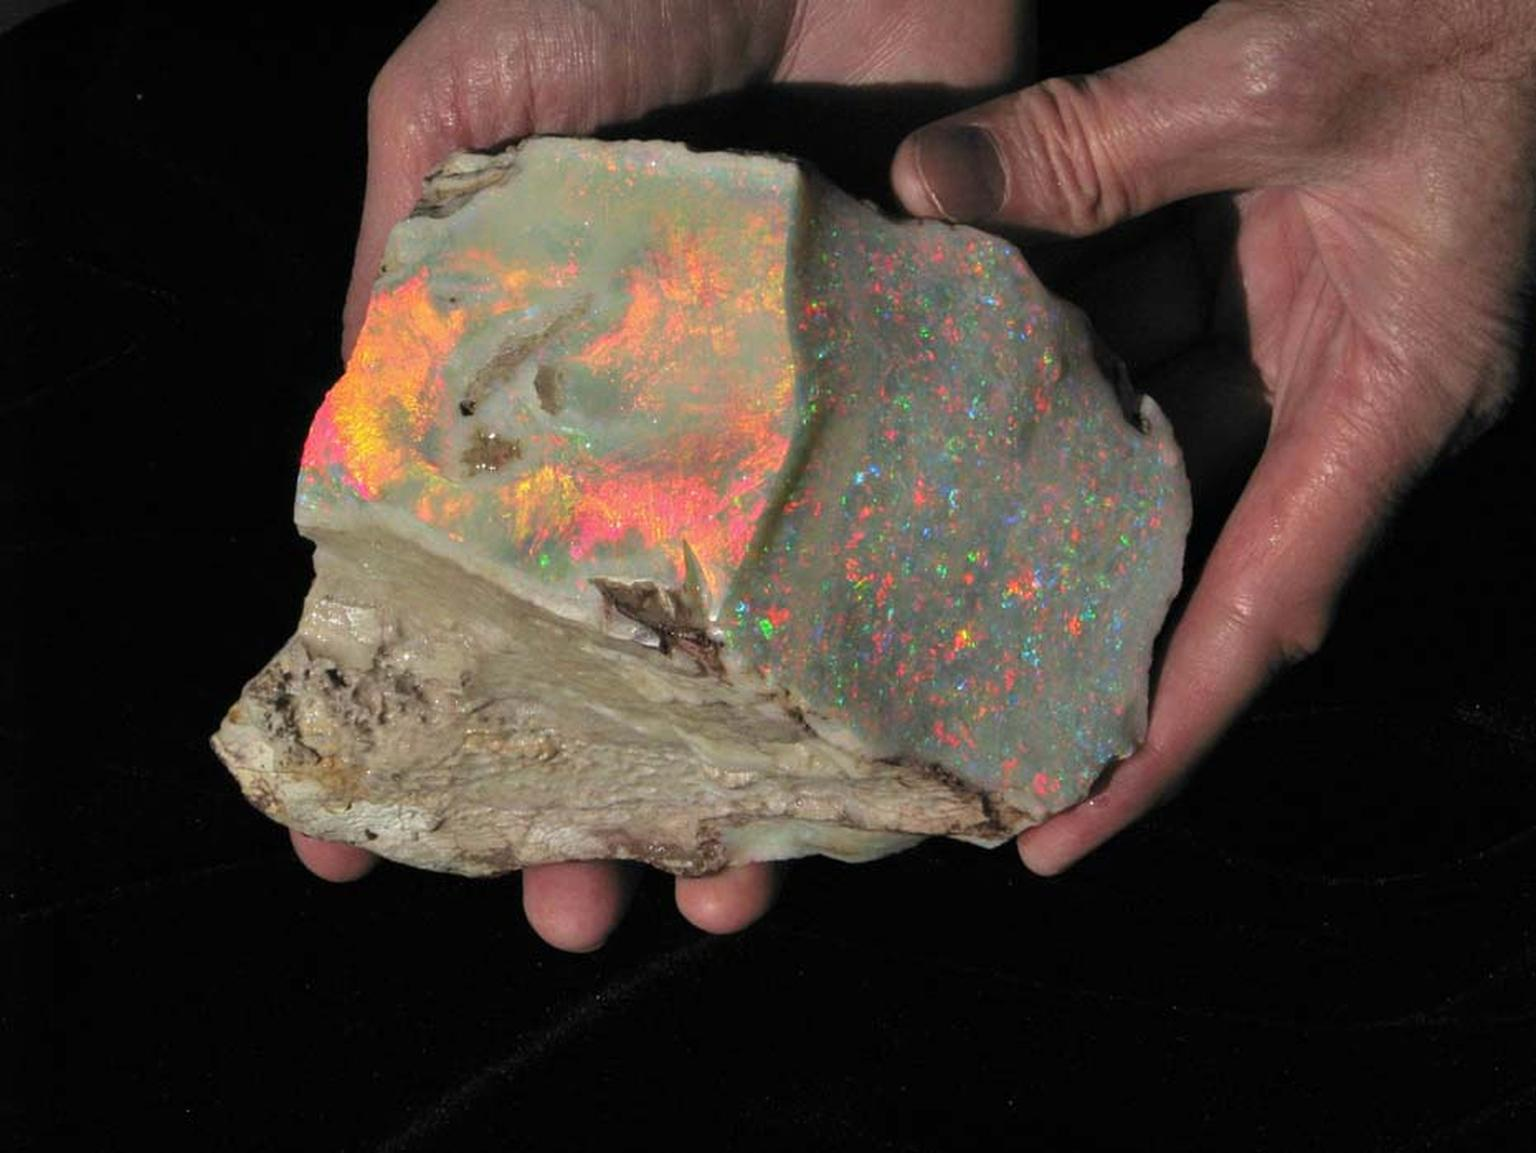 The Fire of Australia, discovered by the Bertram family in 1946, is the most valuable piece of rough light opal of its size in the world, weighing approximately 5,000 carats. Photo: By Ray Bartram and courtesy of the Bartram family.